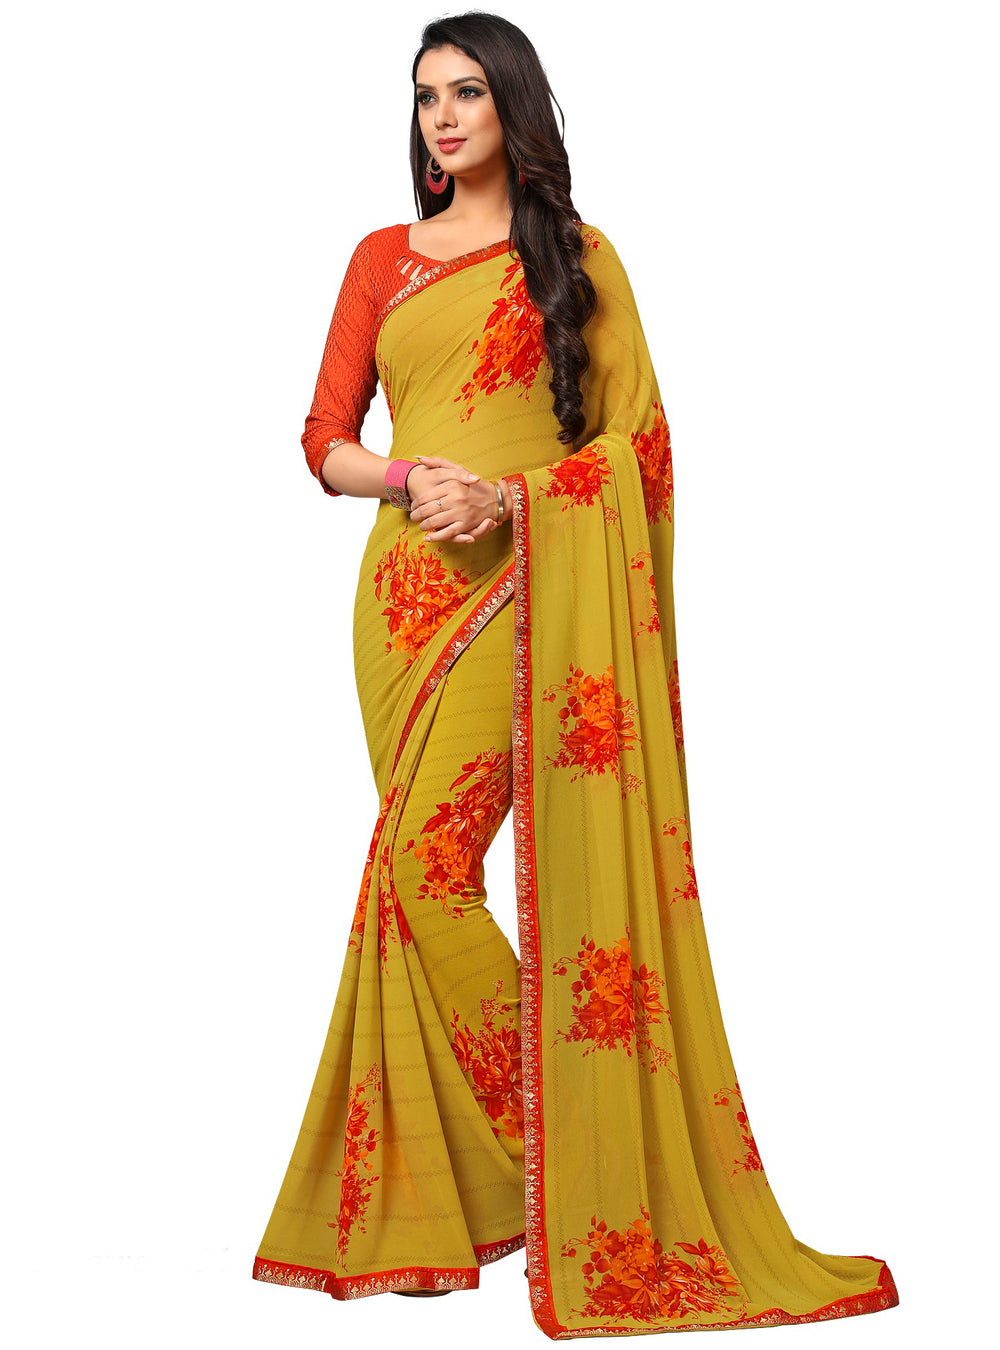 Roop Kashish Women Yellow Party Wear Georgette Printed Saree With Border And Georgette Blouse Material_RKAM8031